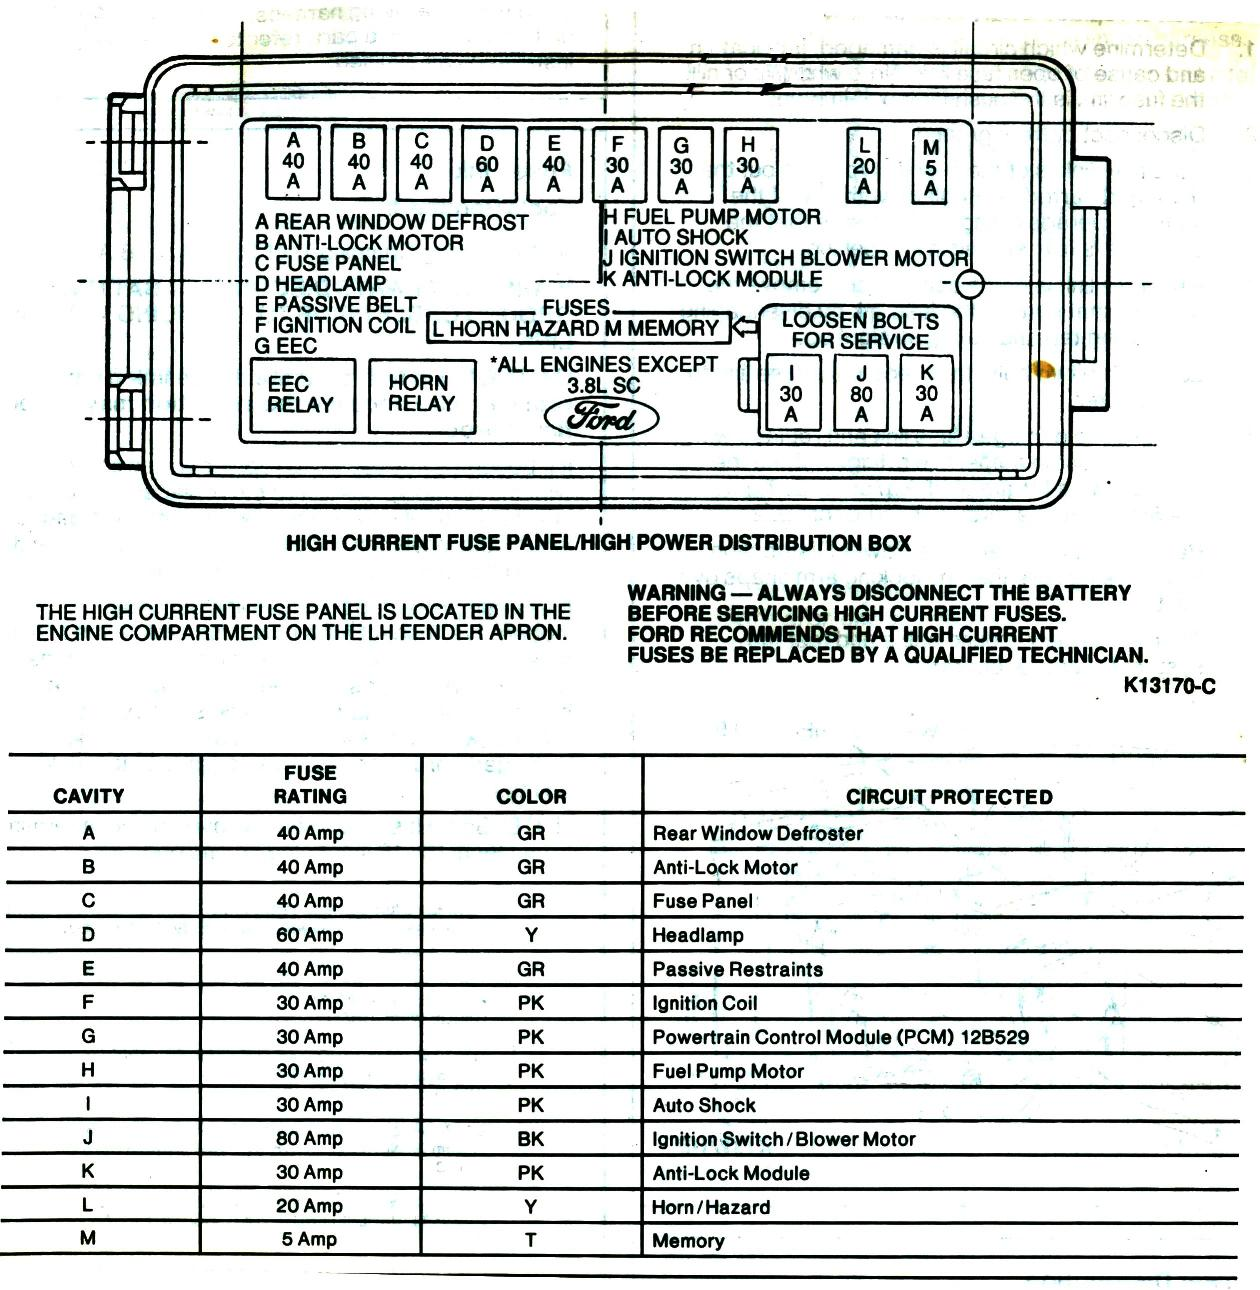 dist box under dash fuse box diagram? 2002 ford thunderbird fuse box diagram at soozxer.org